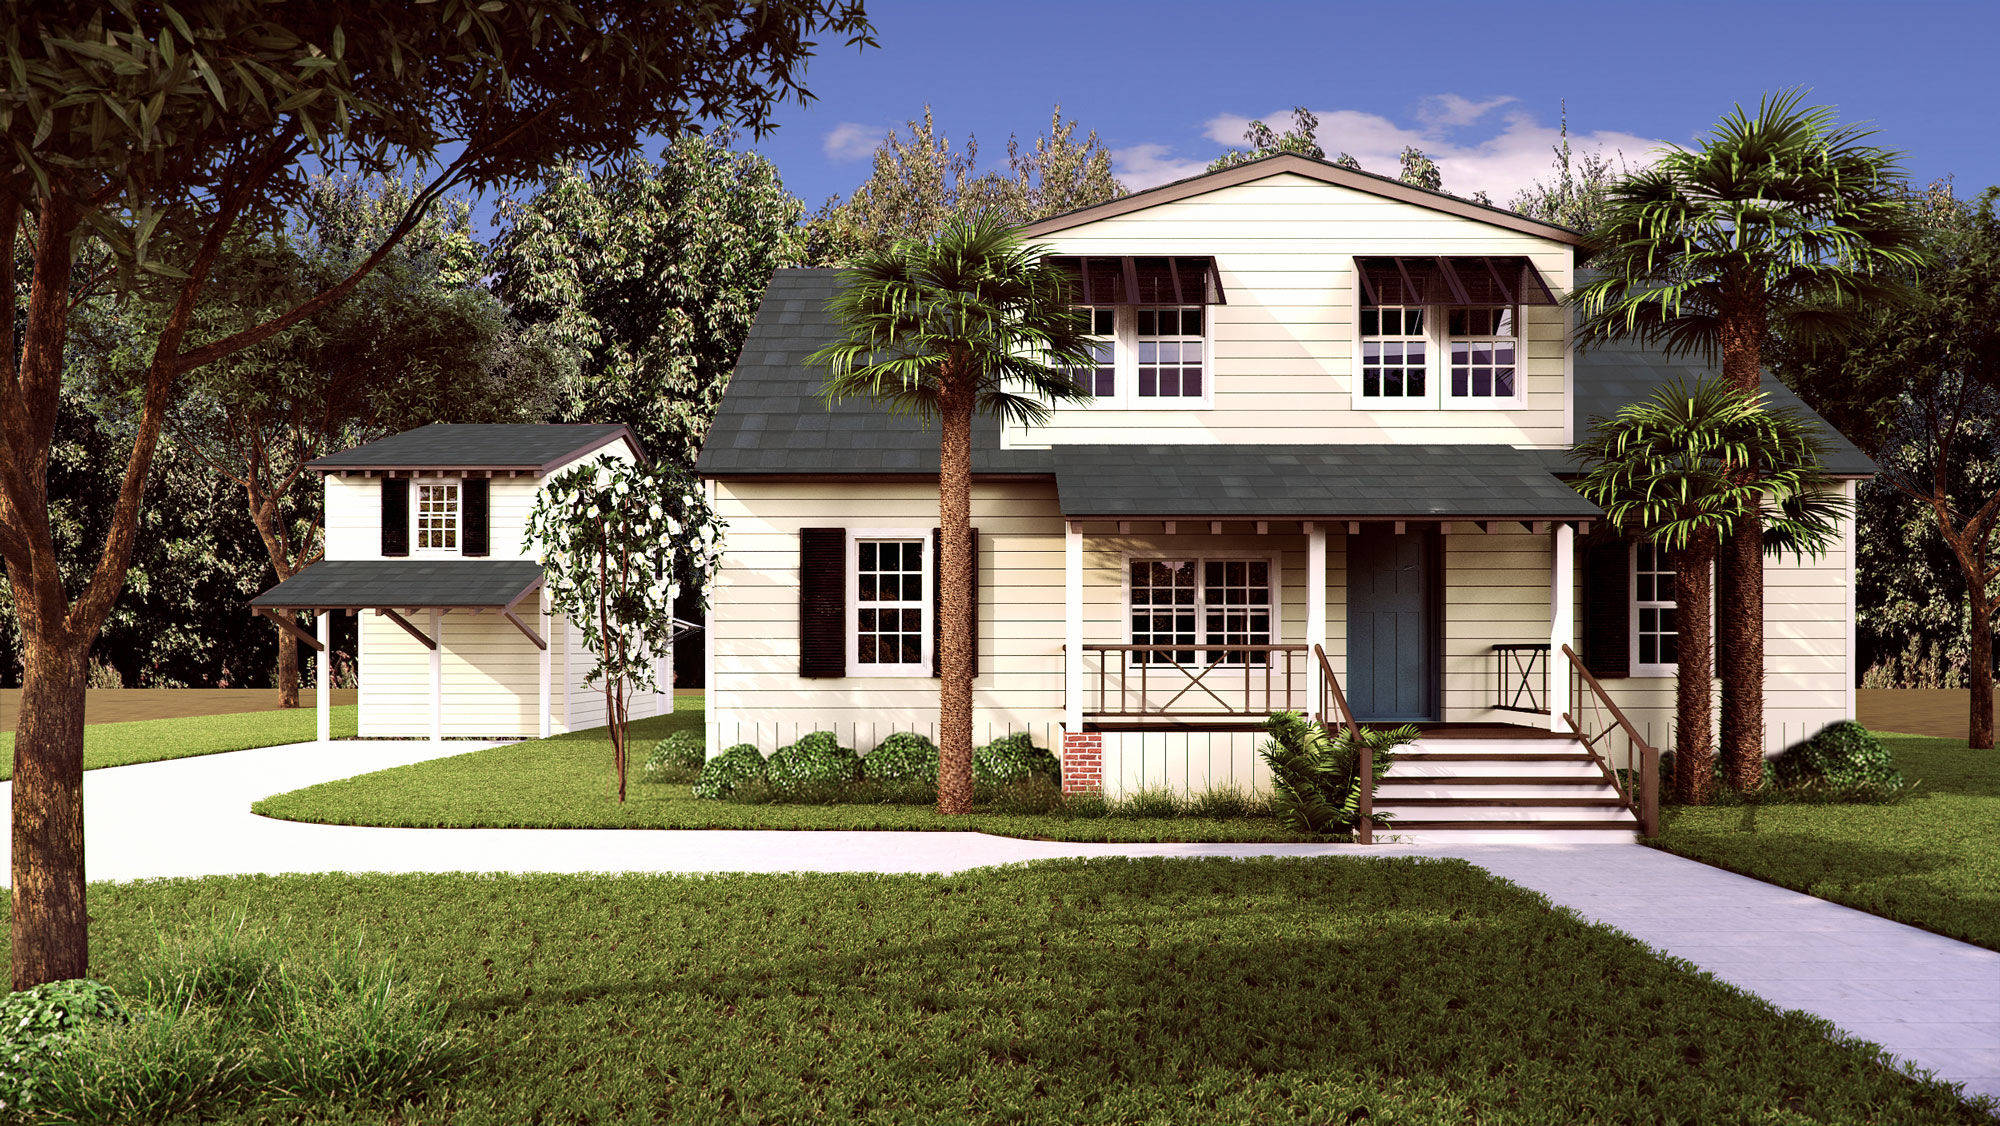 Residential Home 3D Render